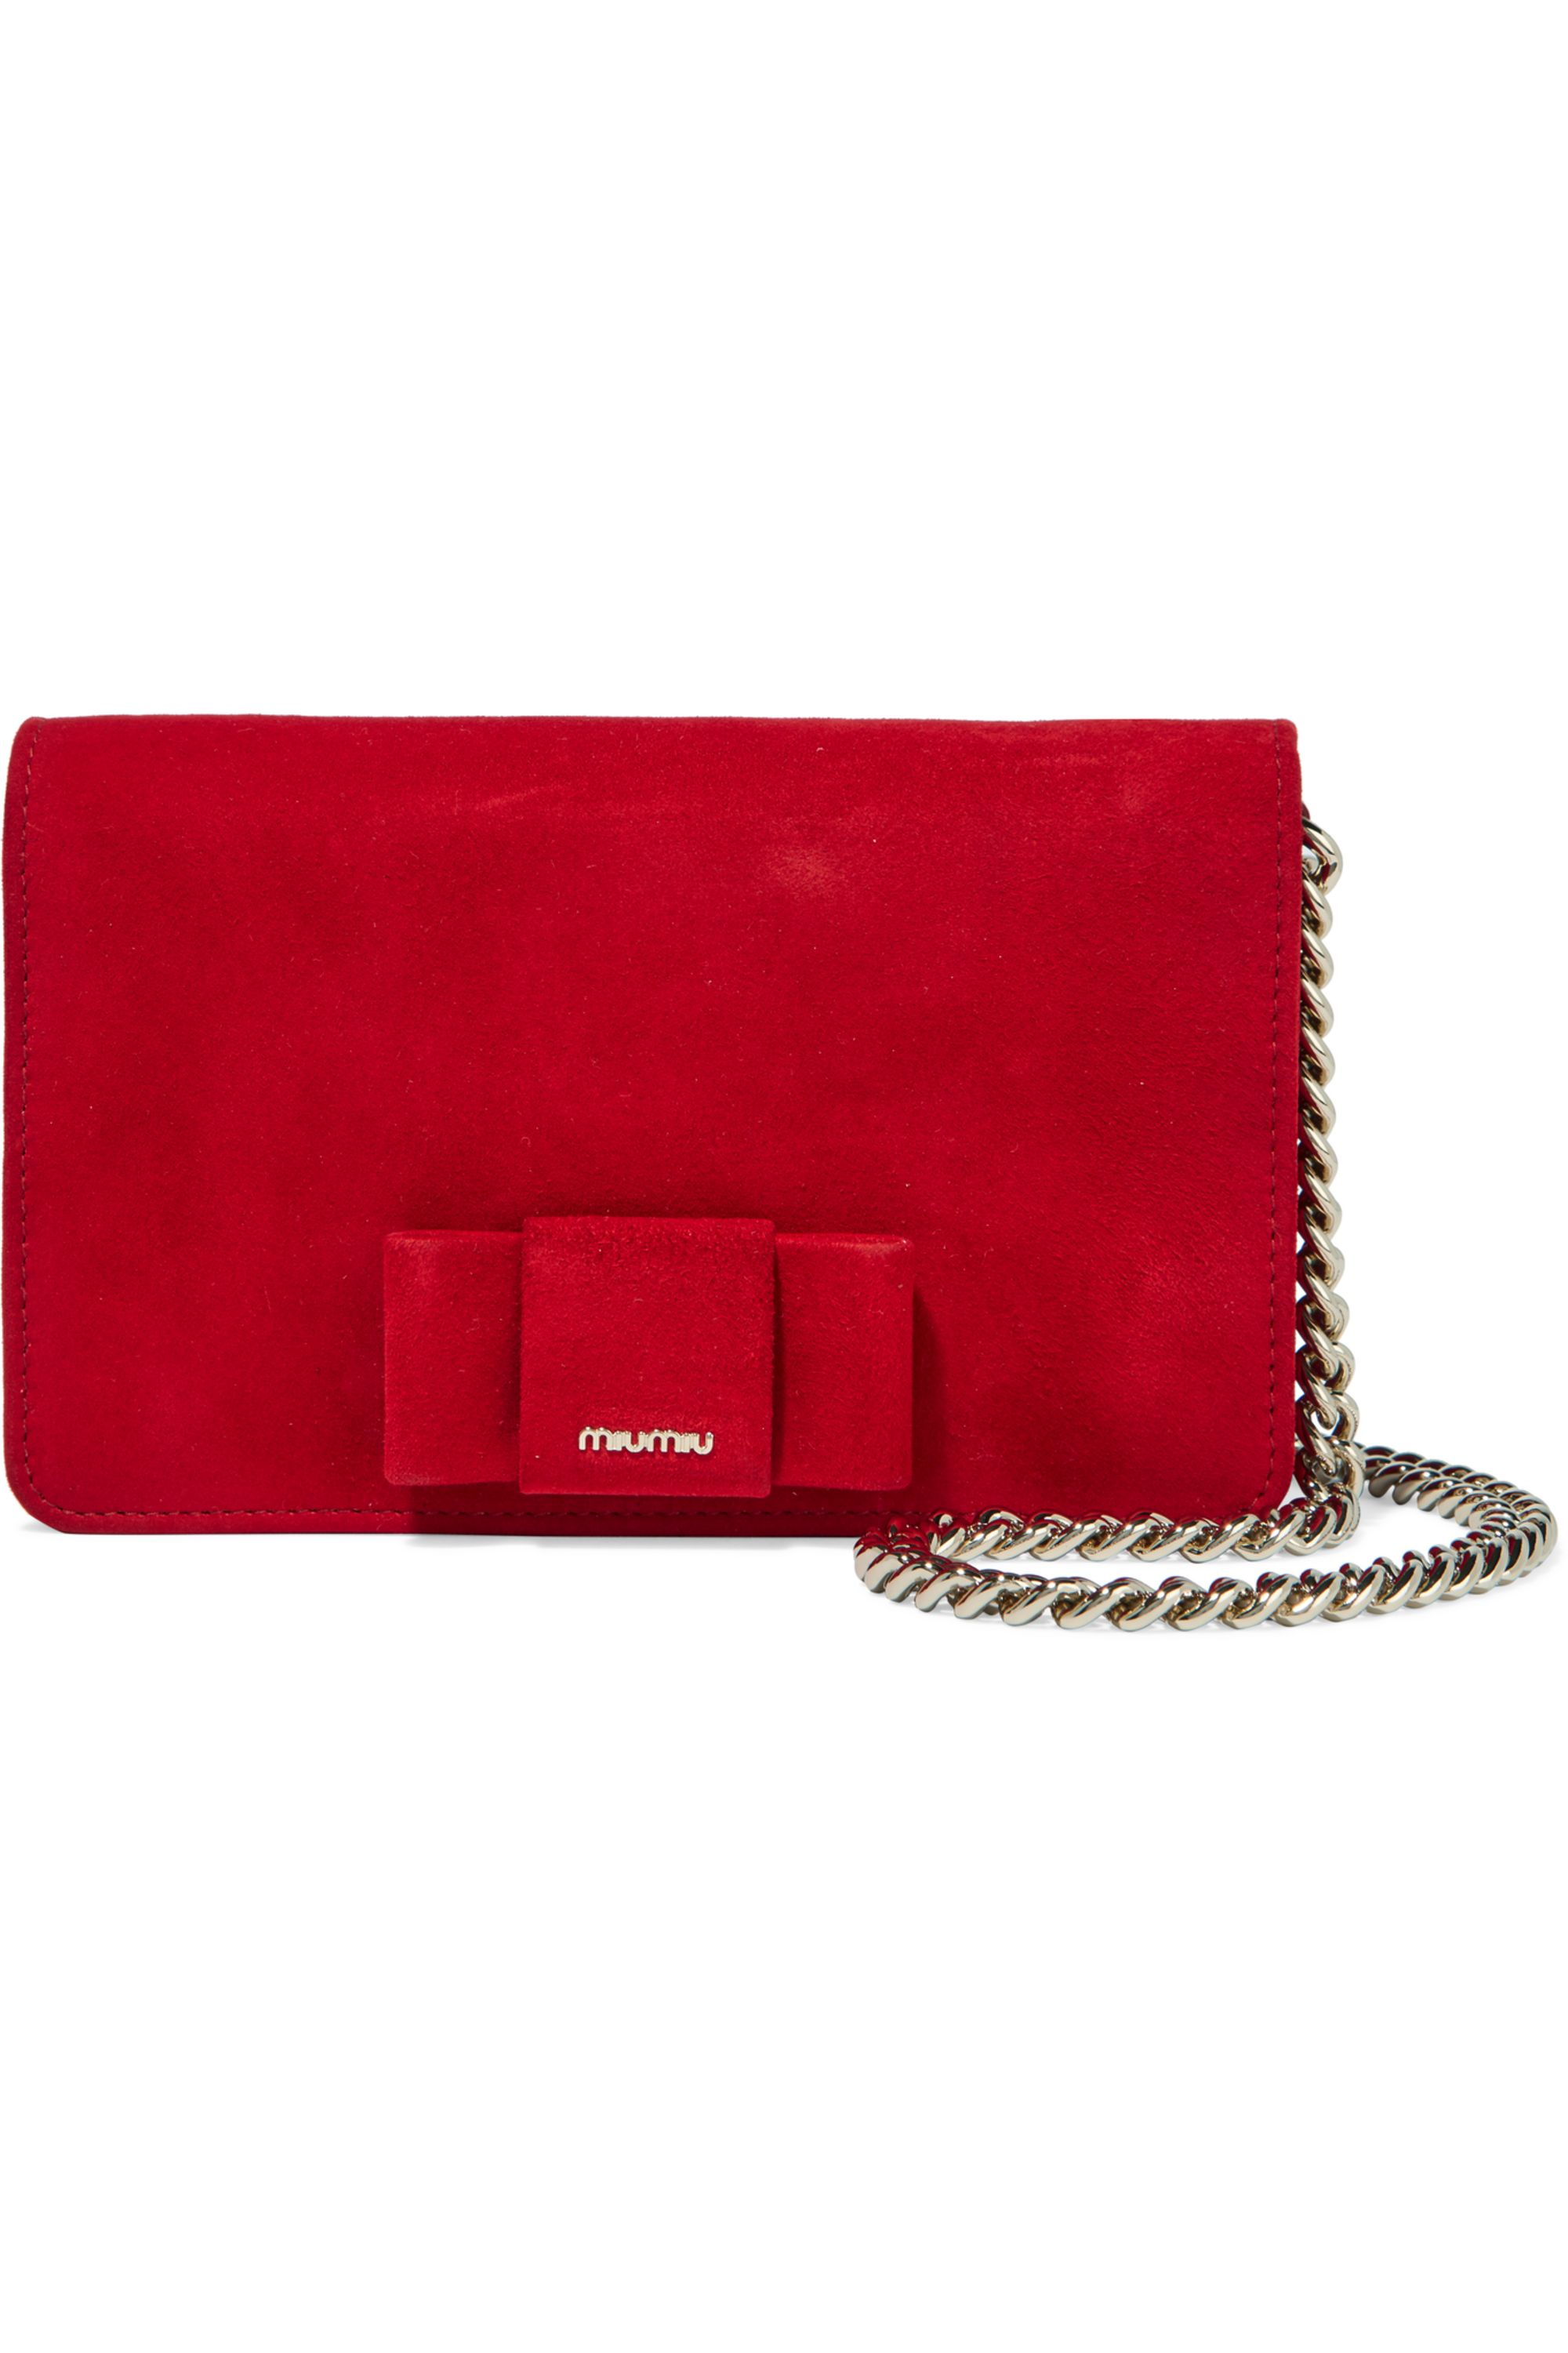 Miu Miu Bow-embellished suede shoulder bag